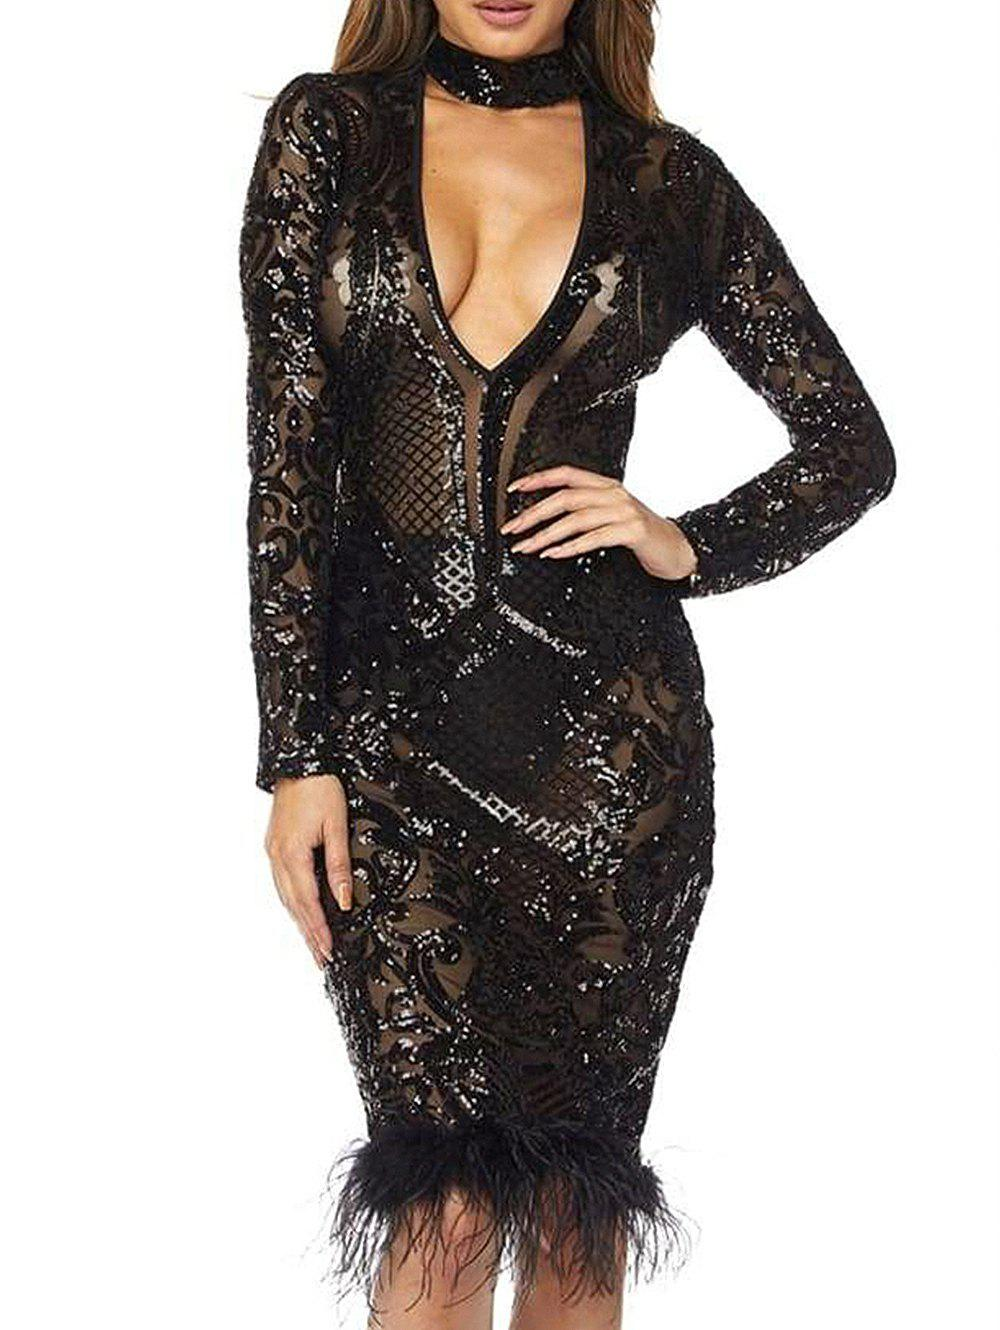 Latest Women Sexy Sequin Lace Ball Dress Romantic Lace Beading Bridal Gown Wedding Dress Party Dress